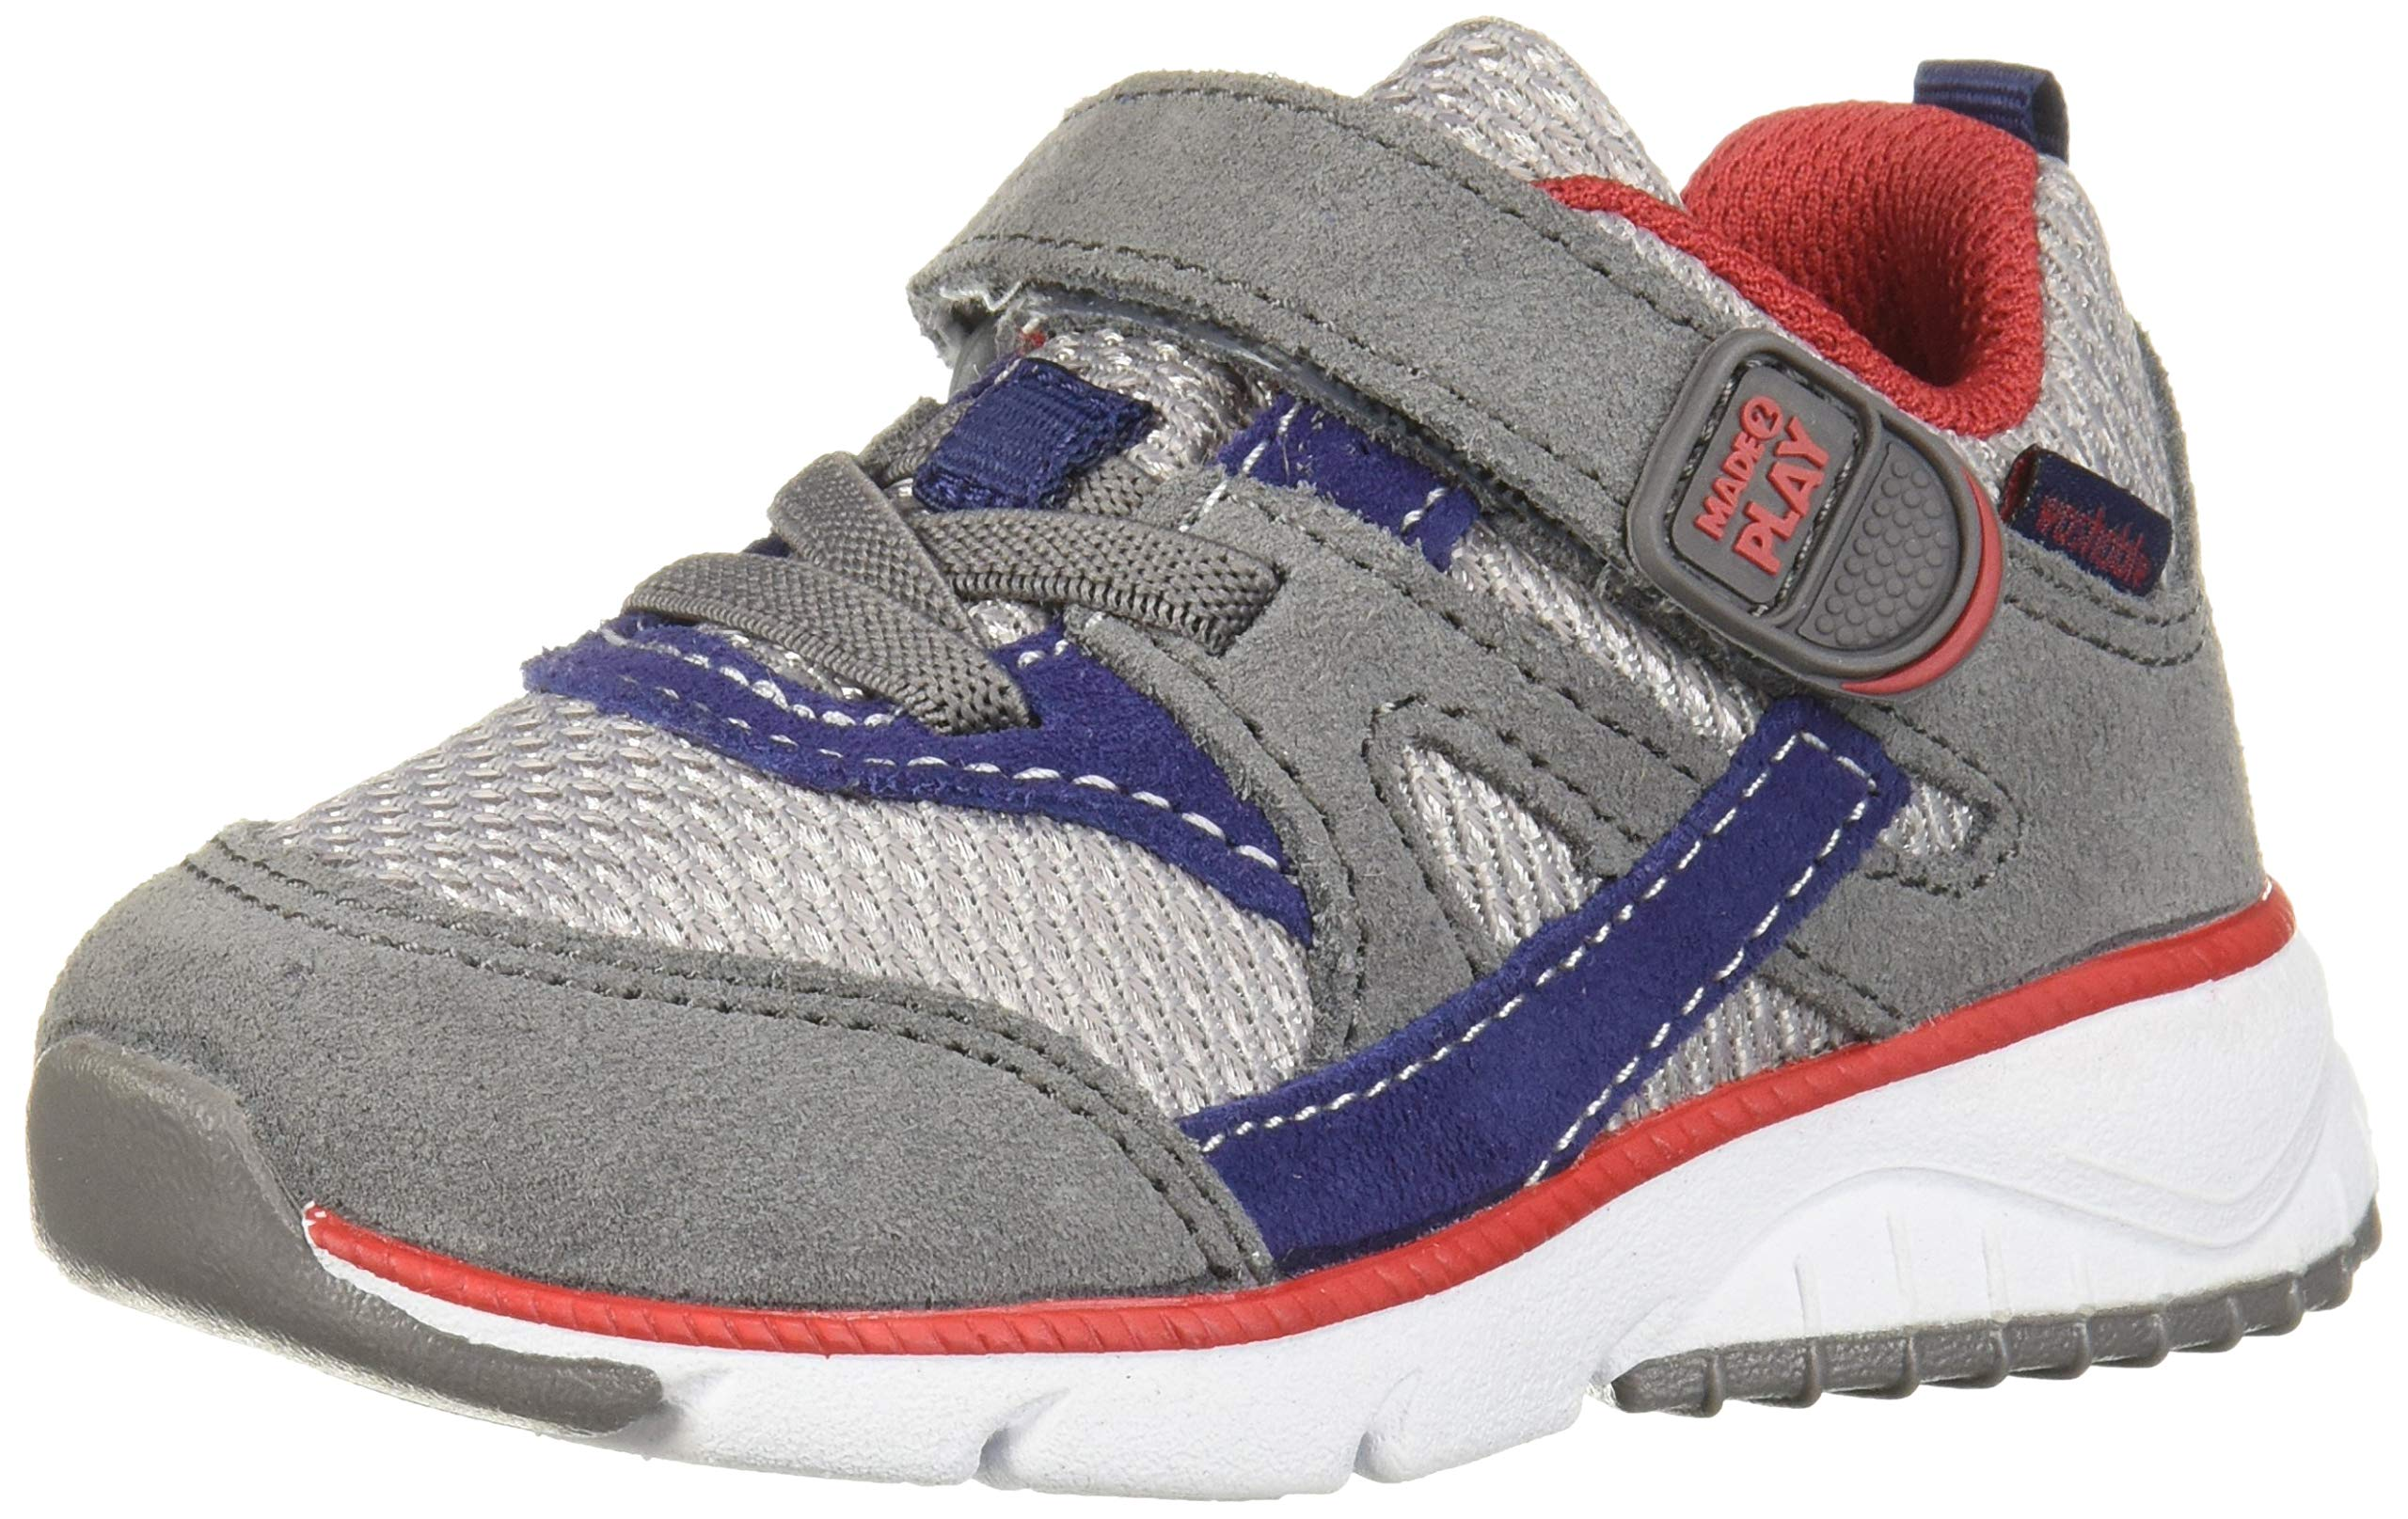 Stride Rite Boys' M2P Indy Sneaker, Navy/Grey, 10 W US Toddler by Stride Rite